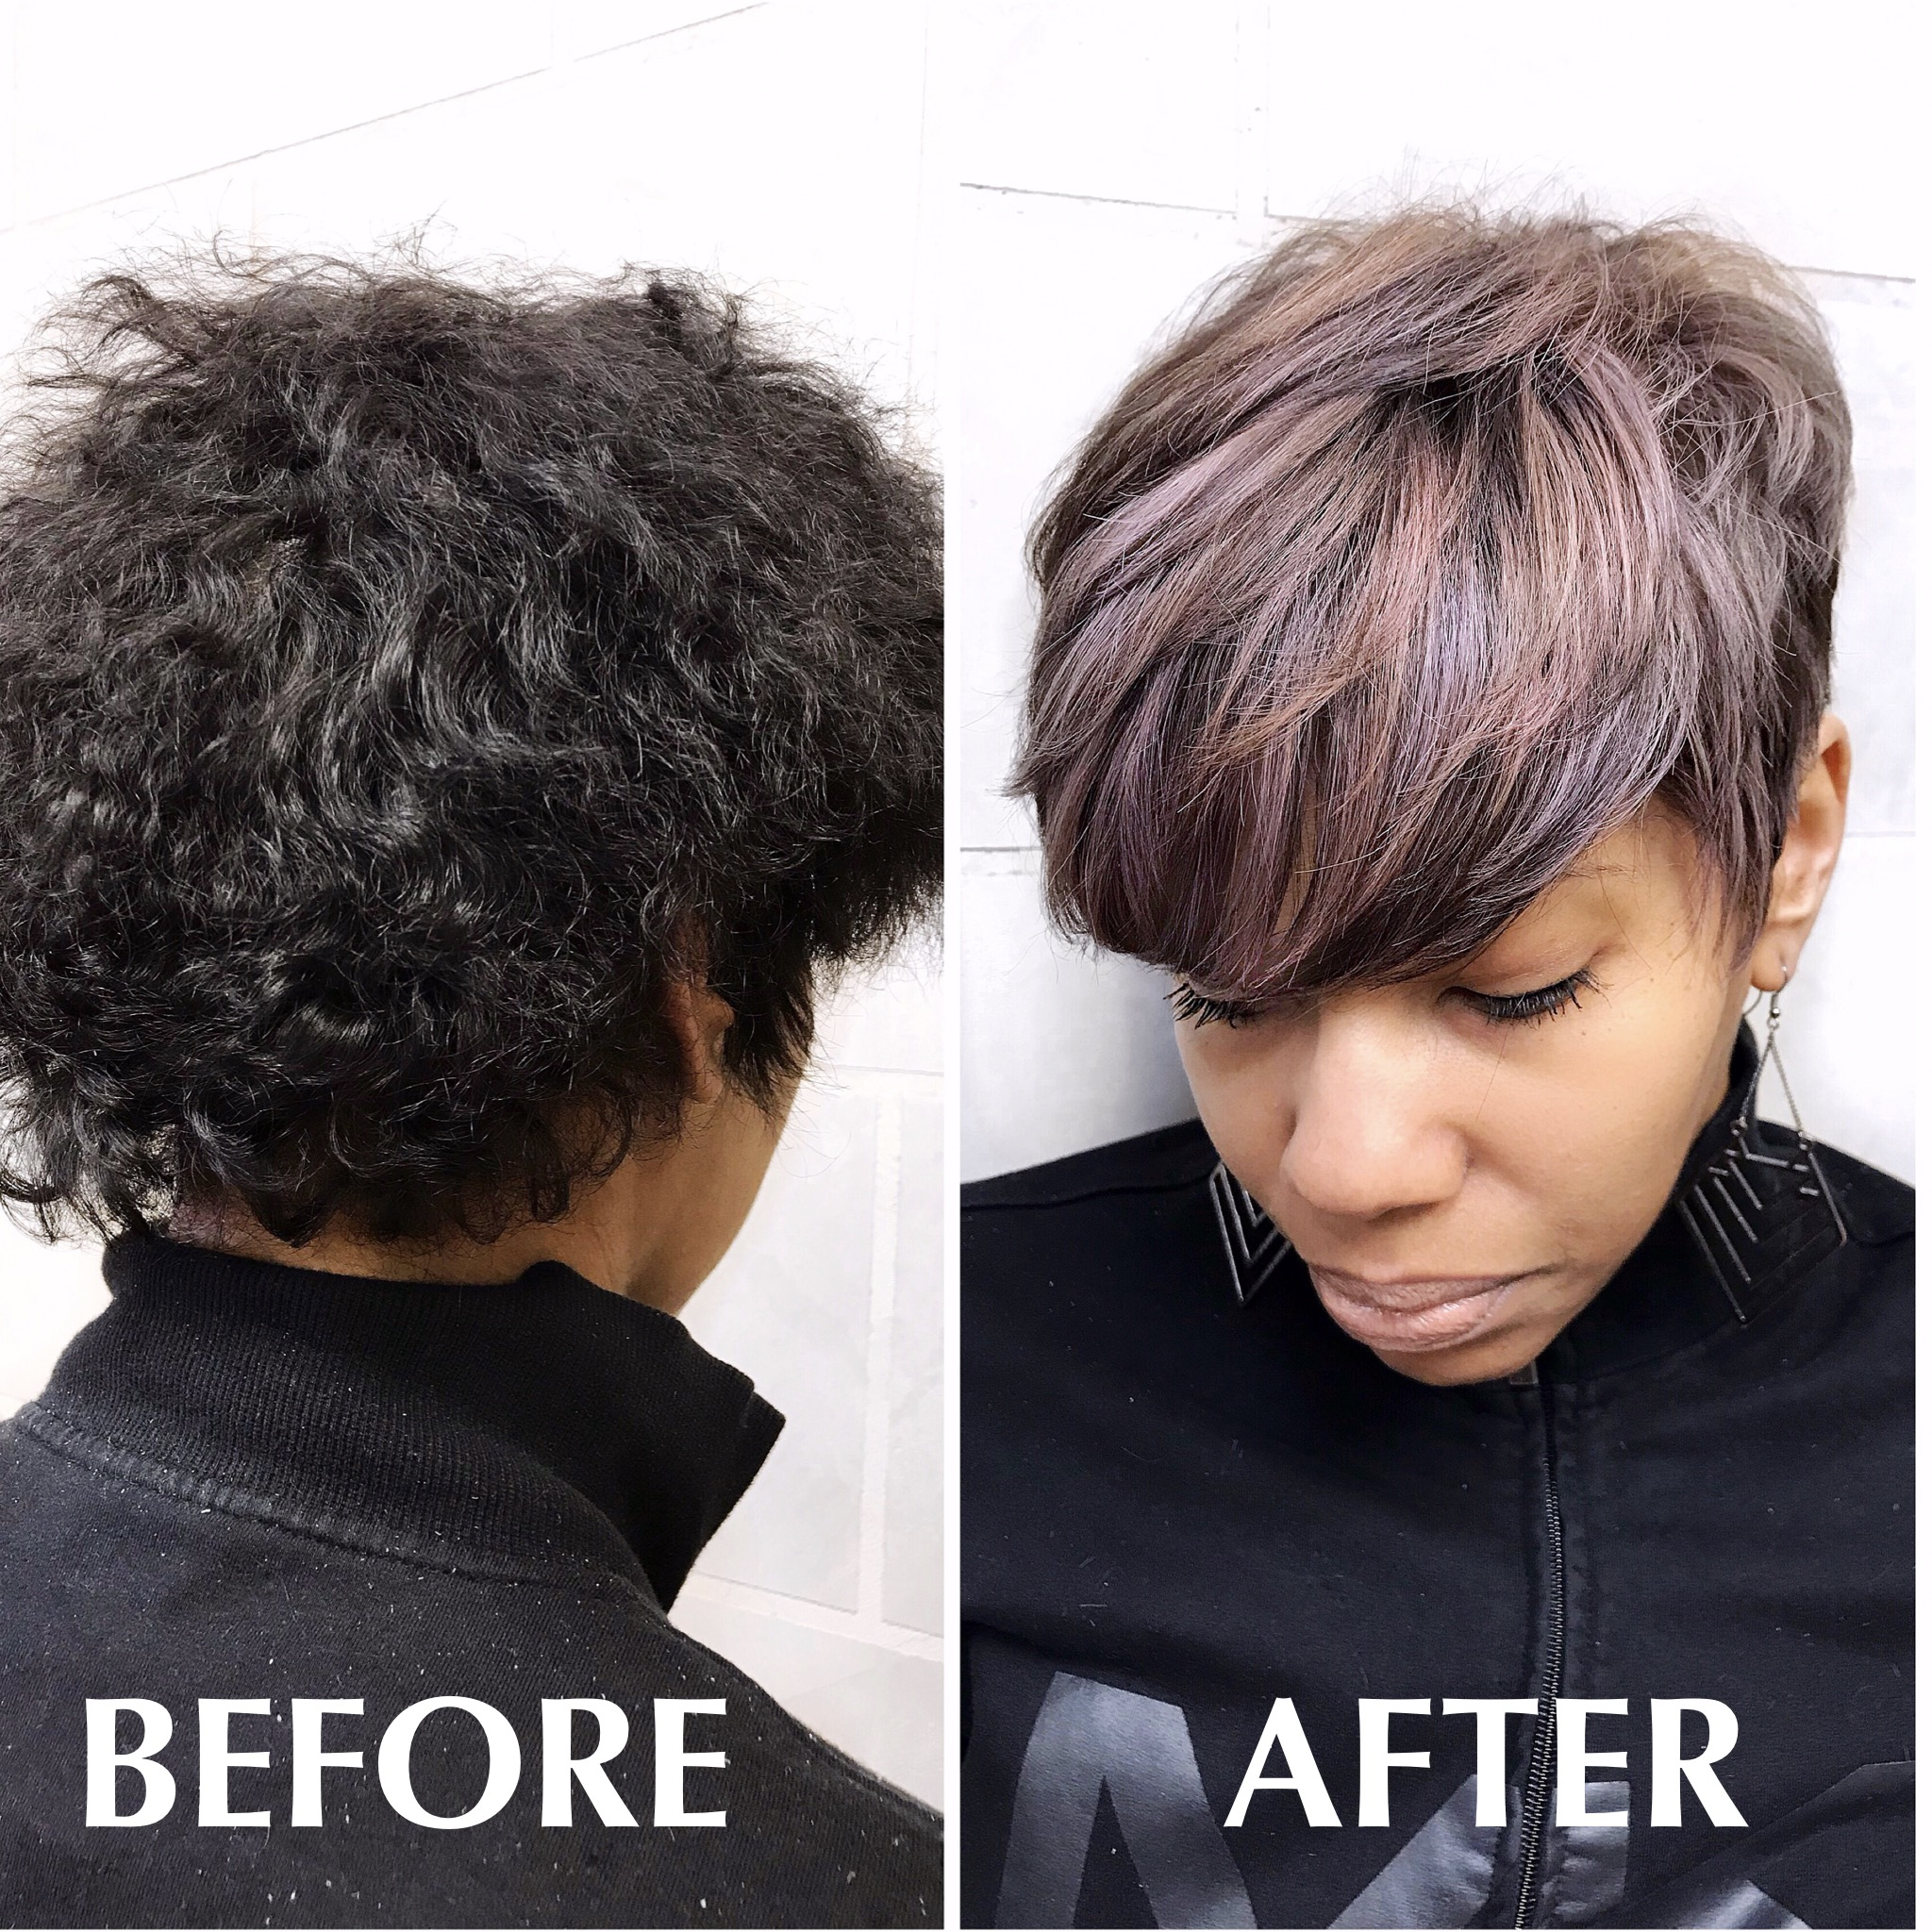 african american hair salon ballantyne, curly hair expert ballantyne, Charlotte Hair colorists, Ballantyne salon, best hair stylist in Charlotte, Balayage charlotte